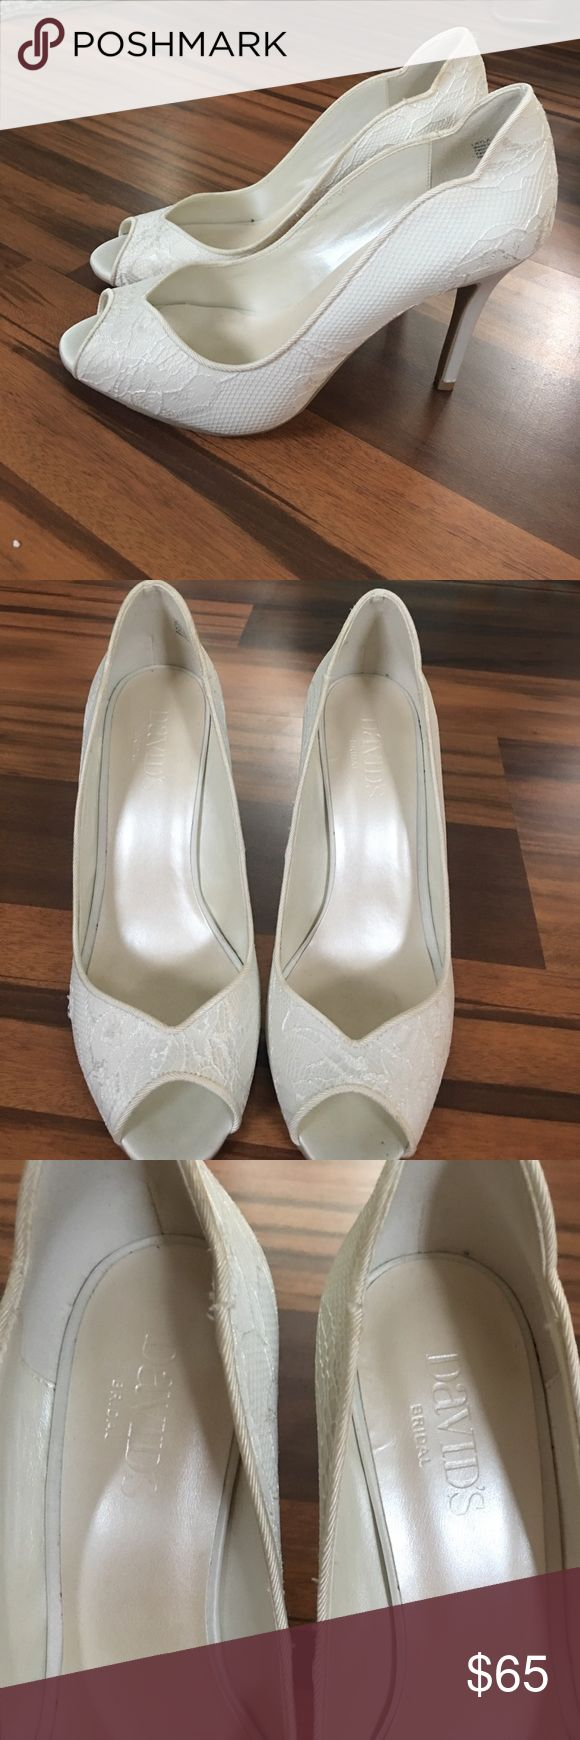 David's Bridal wedding shoes! Brand new, never worn. Size 7.5M. Ivory. David's Bridal Shoes Heels